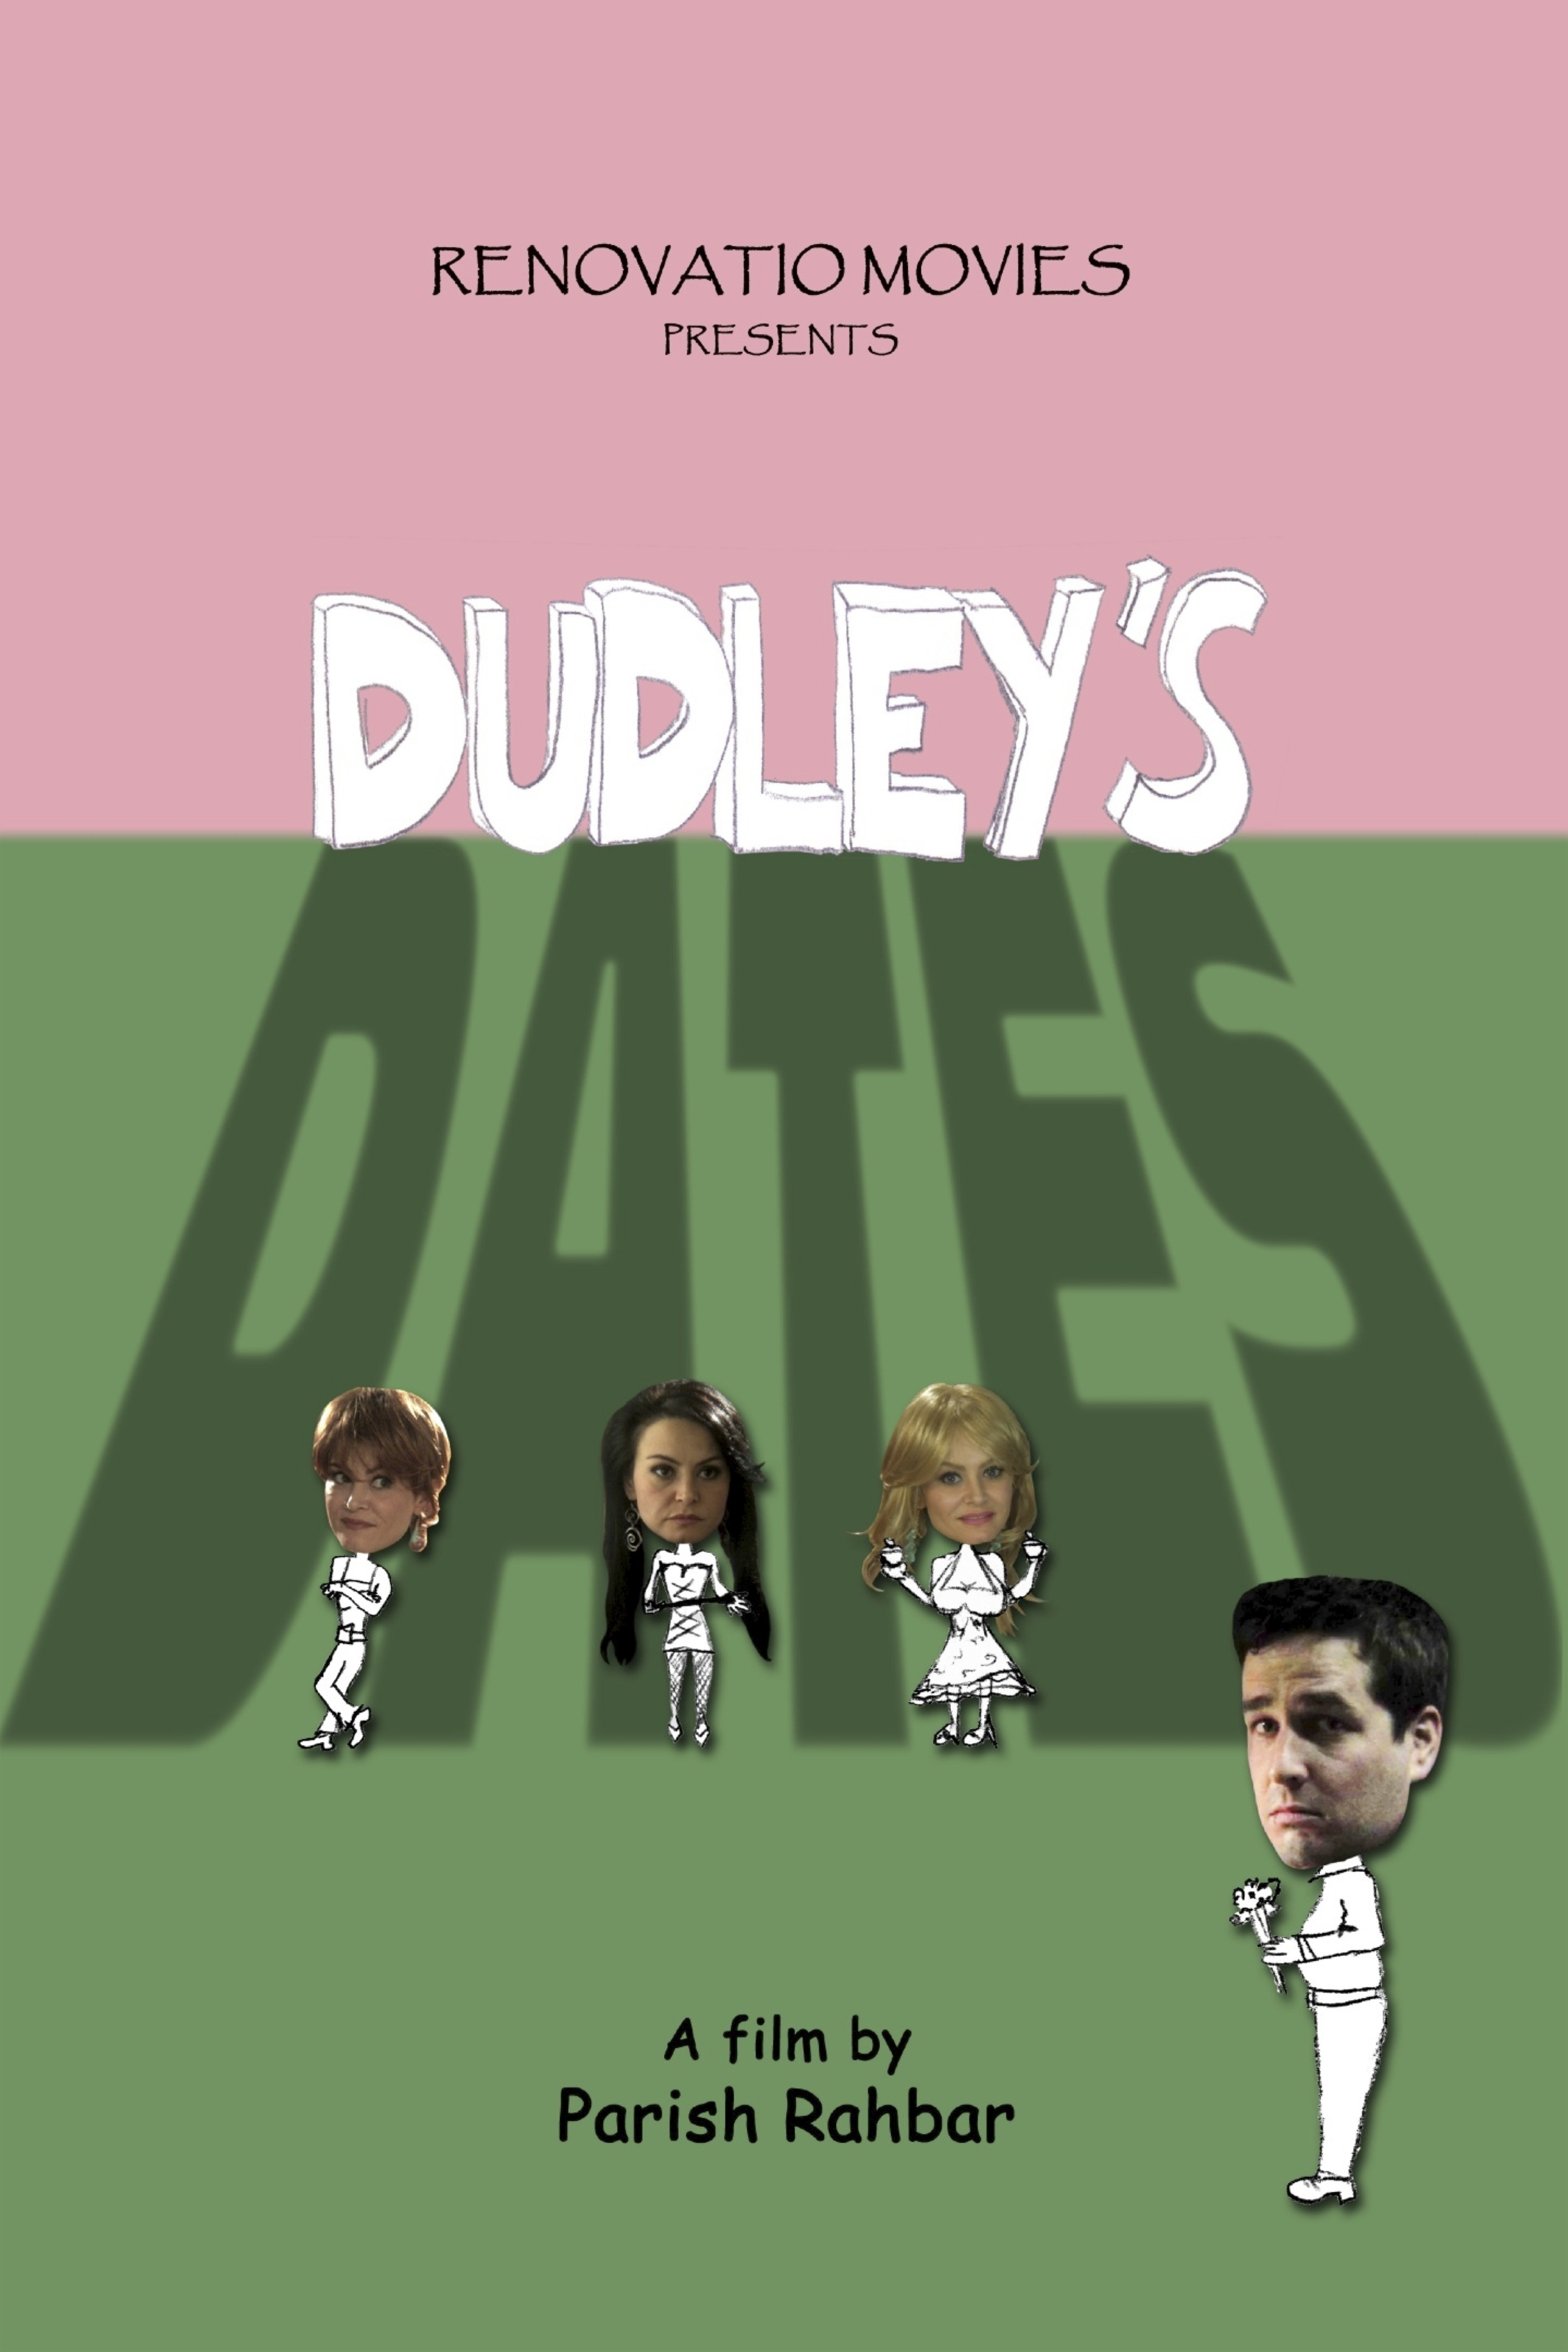 Dudley's Dates